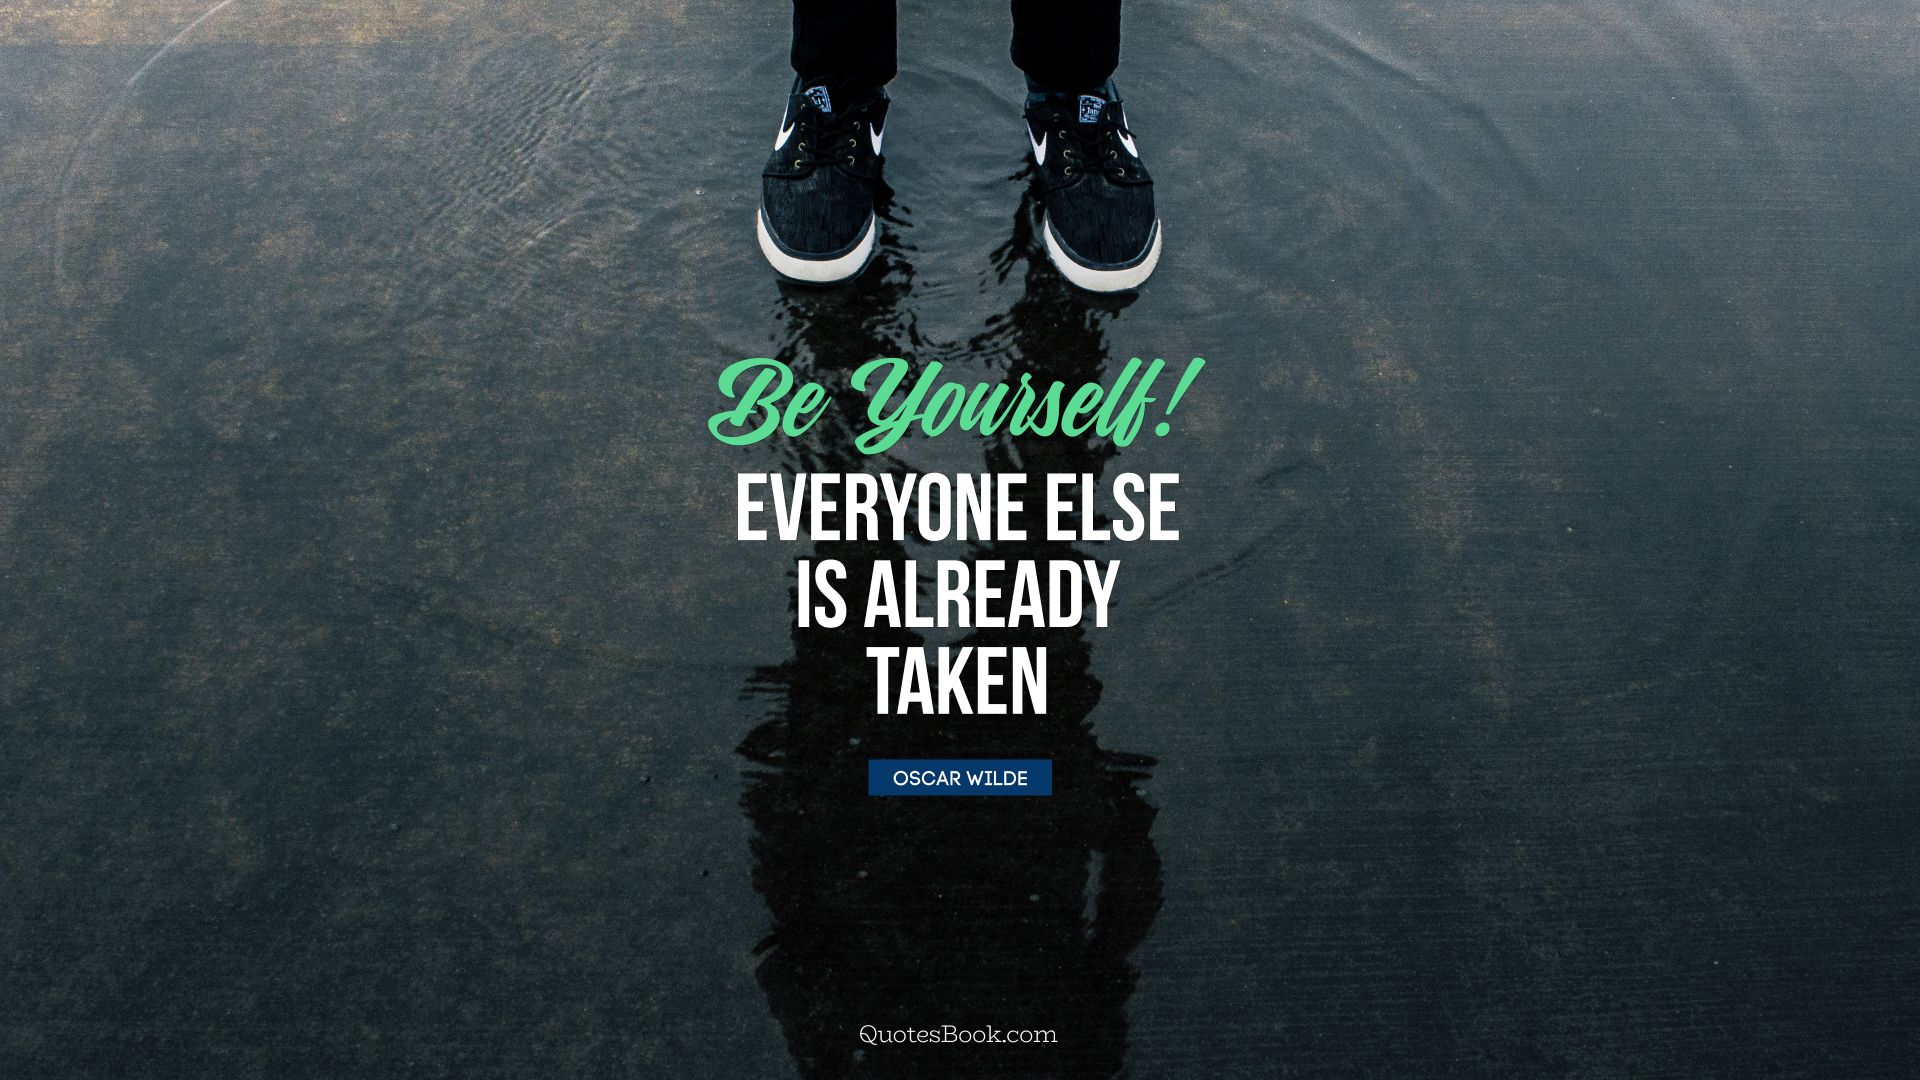 Be yourself! Everyone else is already taken. - Quote by Oscar Wilde